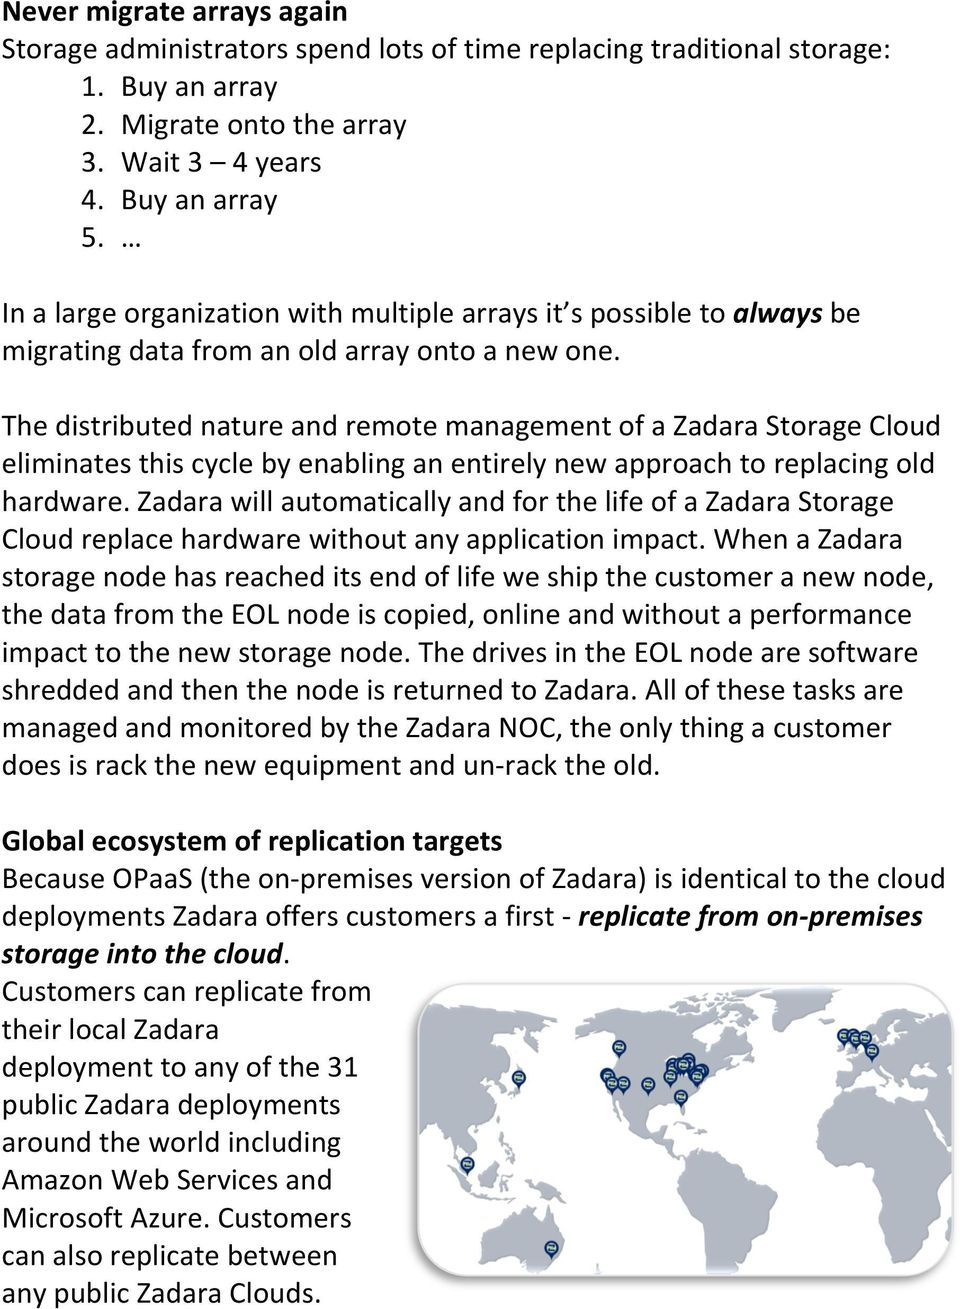 The distributed nature and remote management of a Zadara Storage Cloud eliminates this cycle by enabling an entirely new approach to replacing old hardware.